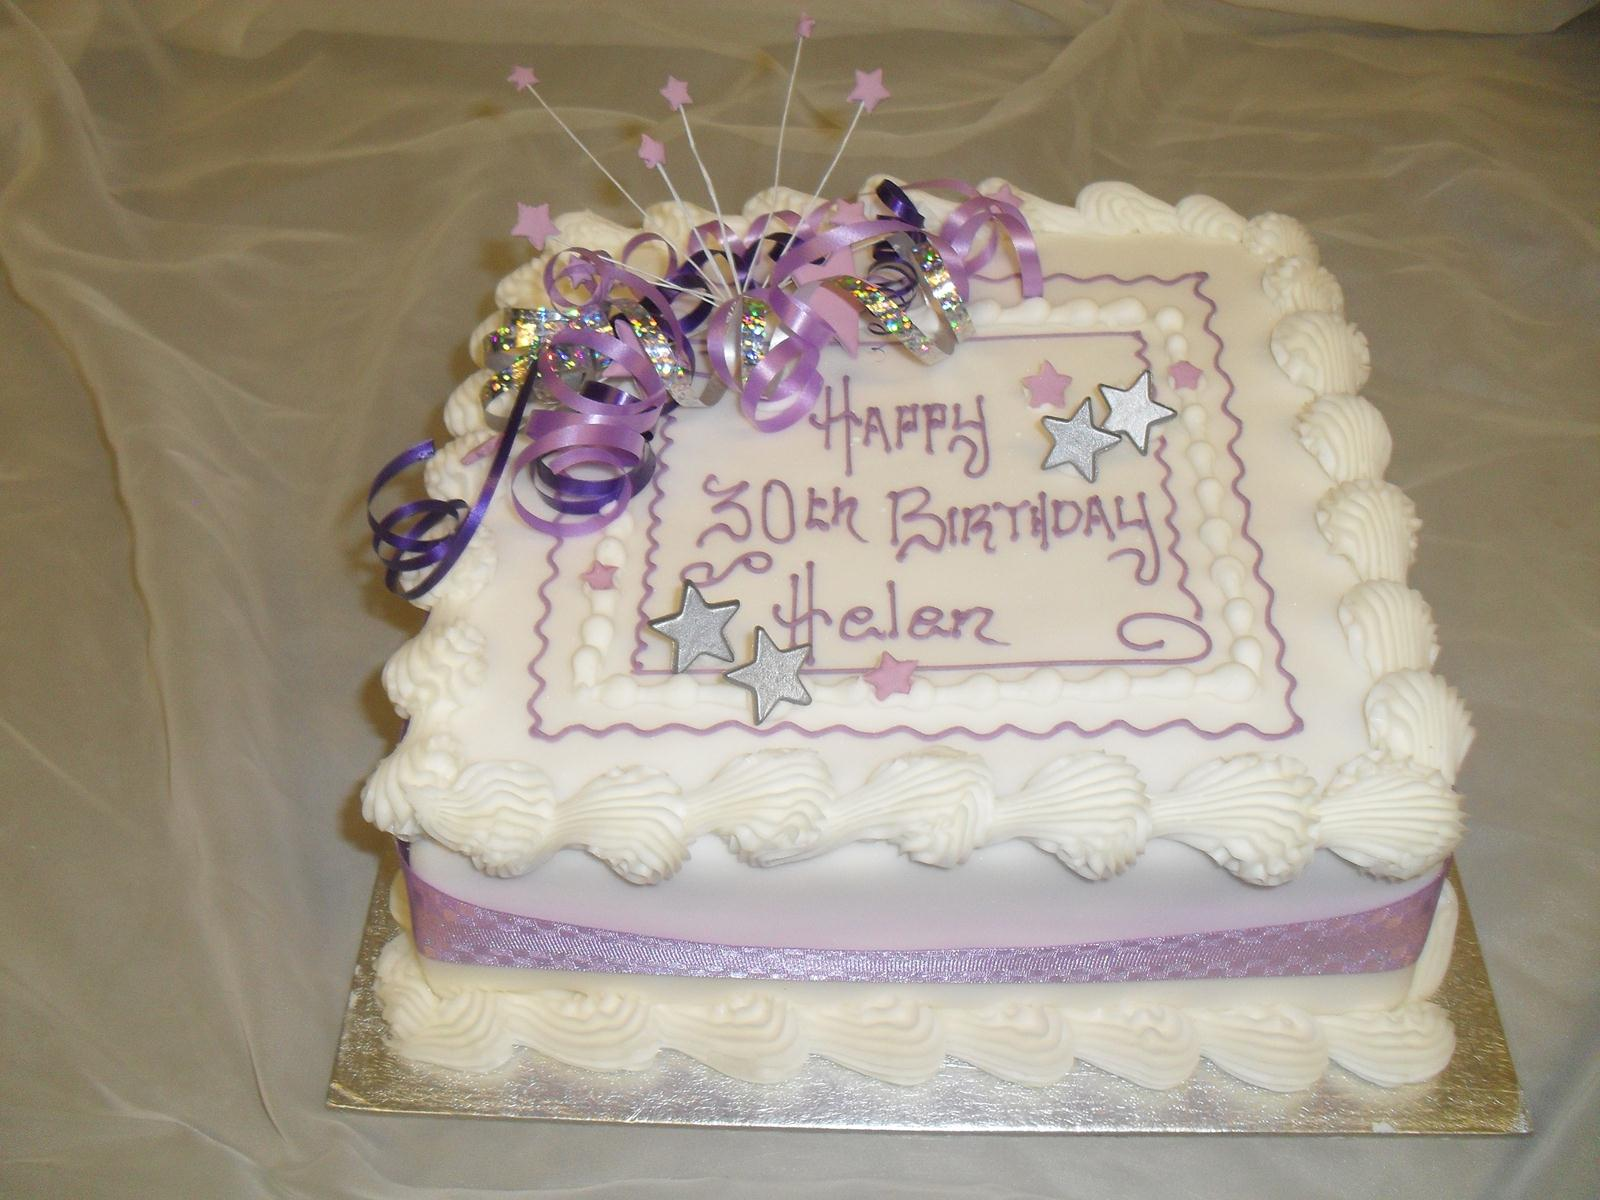 Birthday Cakes For Boys With Name ~ Birthday cake pic with name hira ~ prezup for .